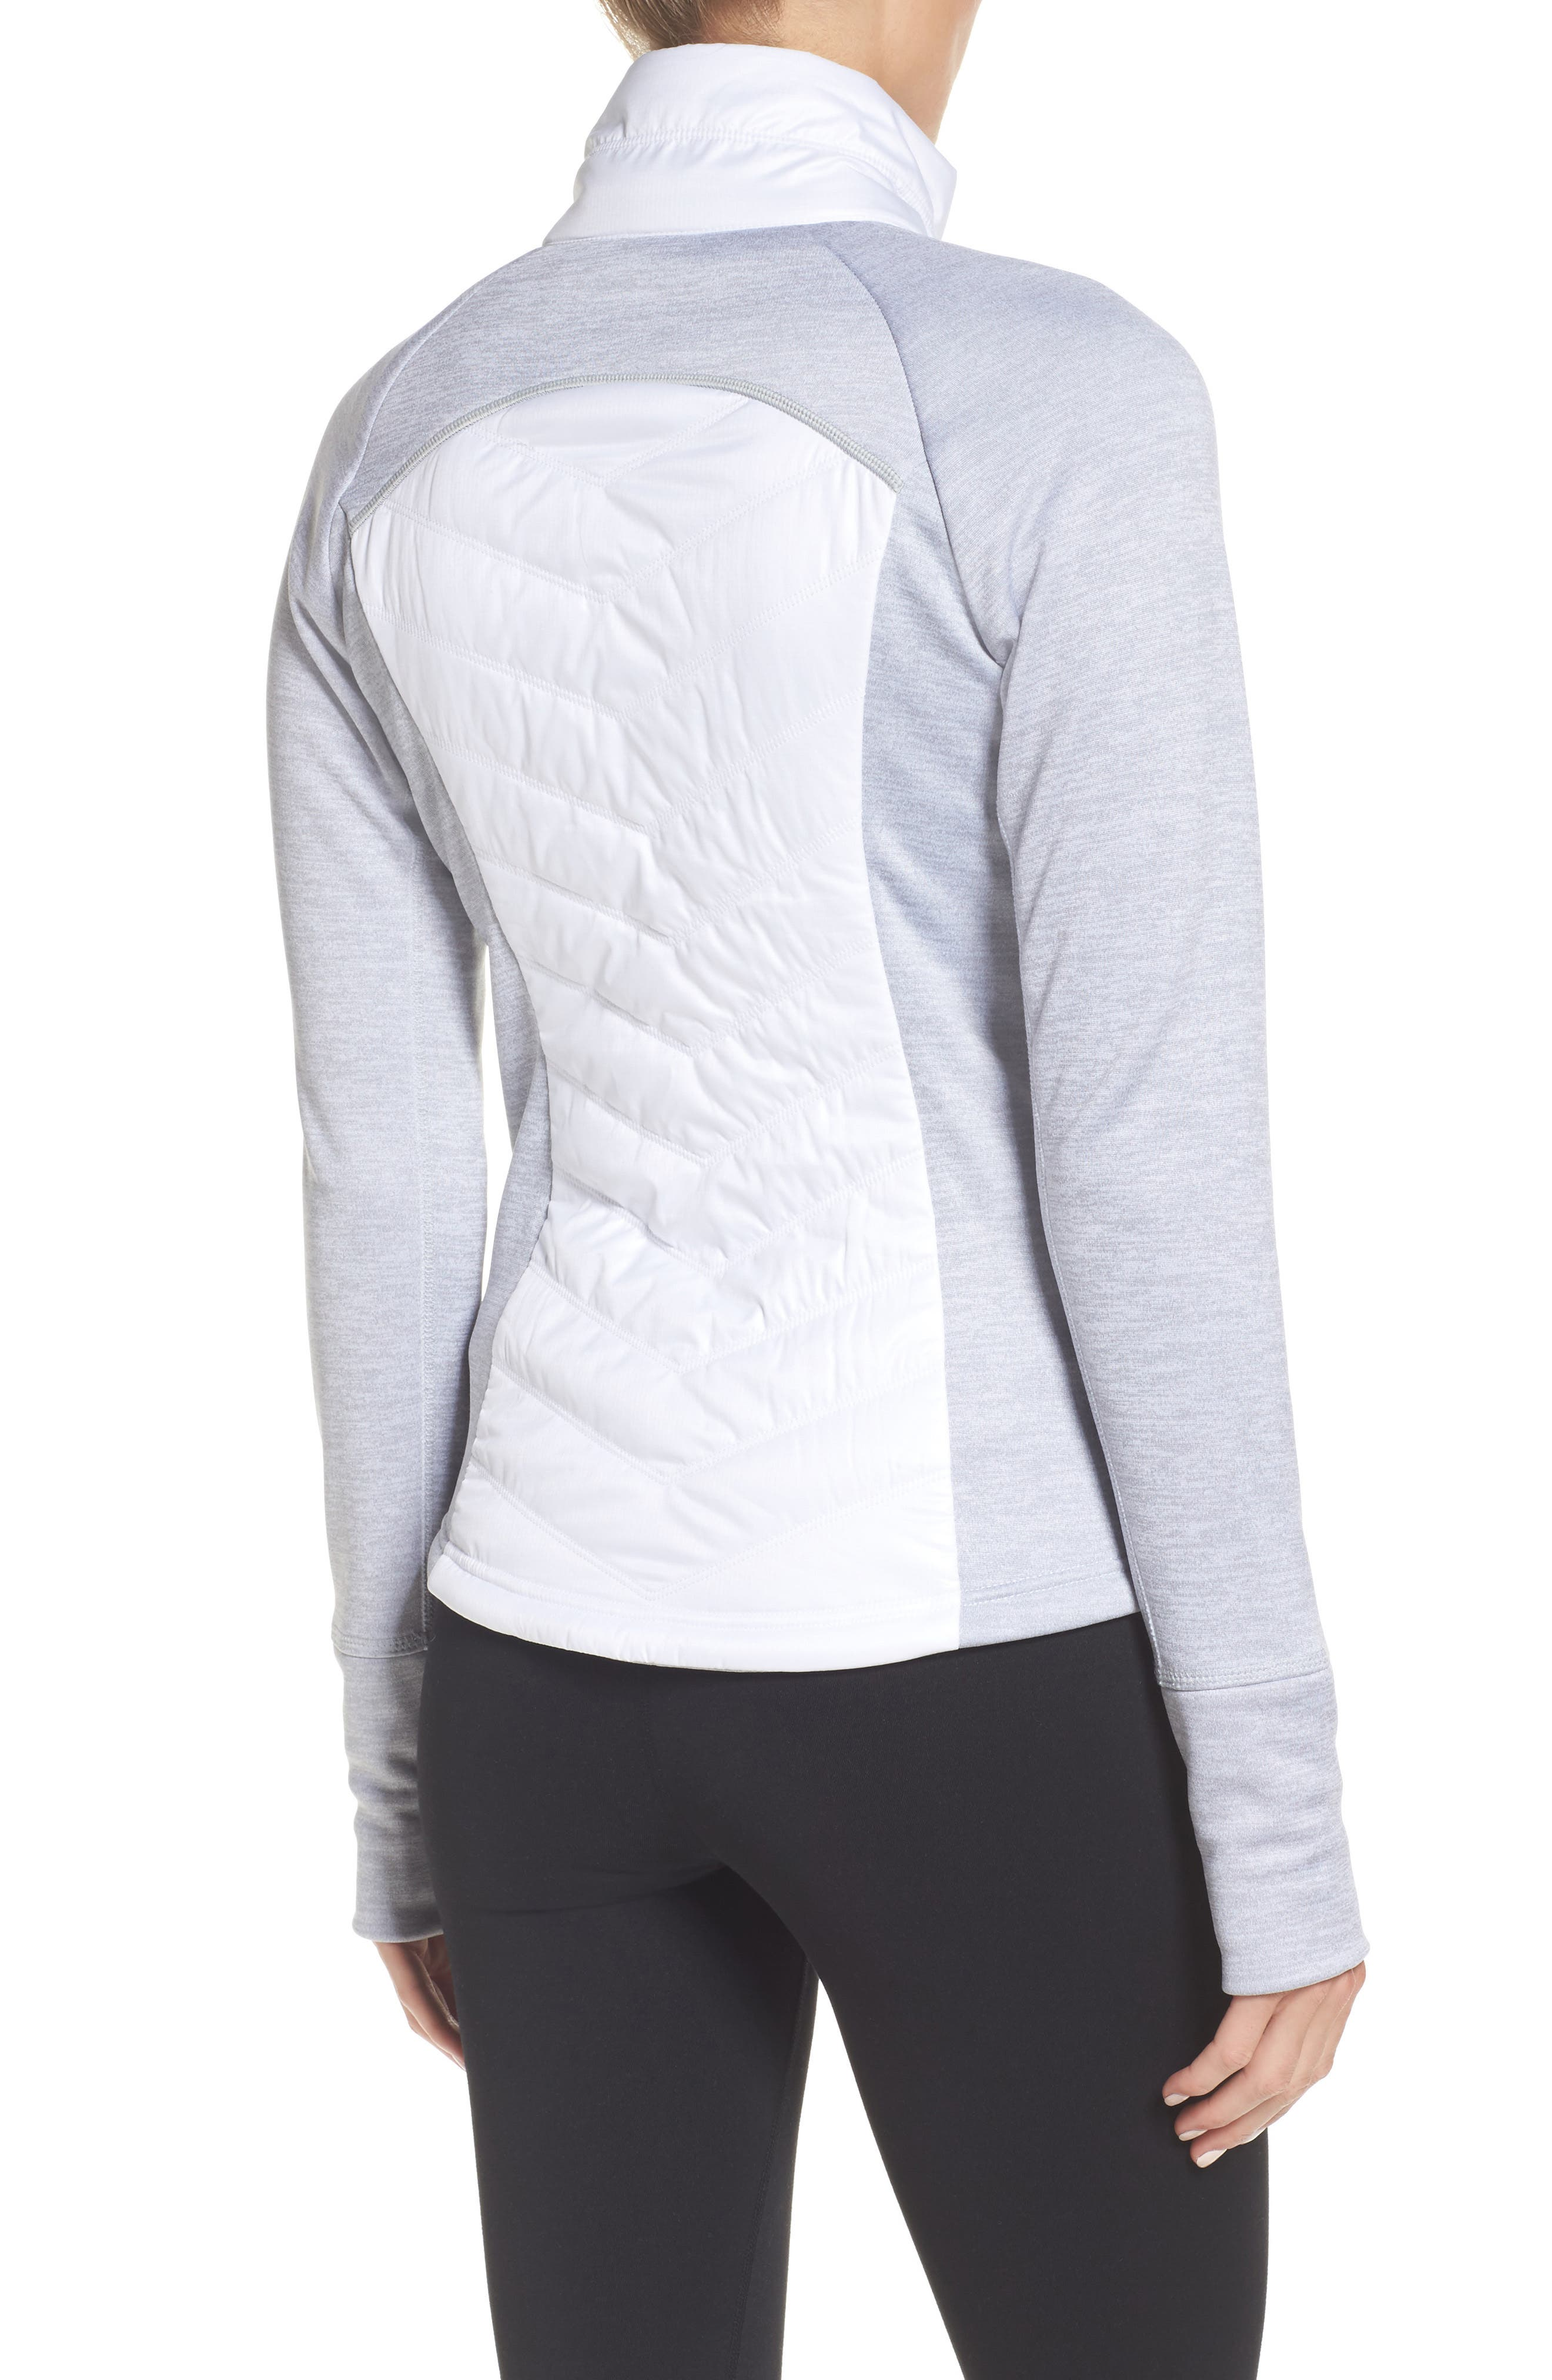 Zelfusion Reflective Quilted Jacket,                             Alternate thumbnail 21, color,